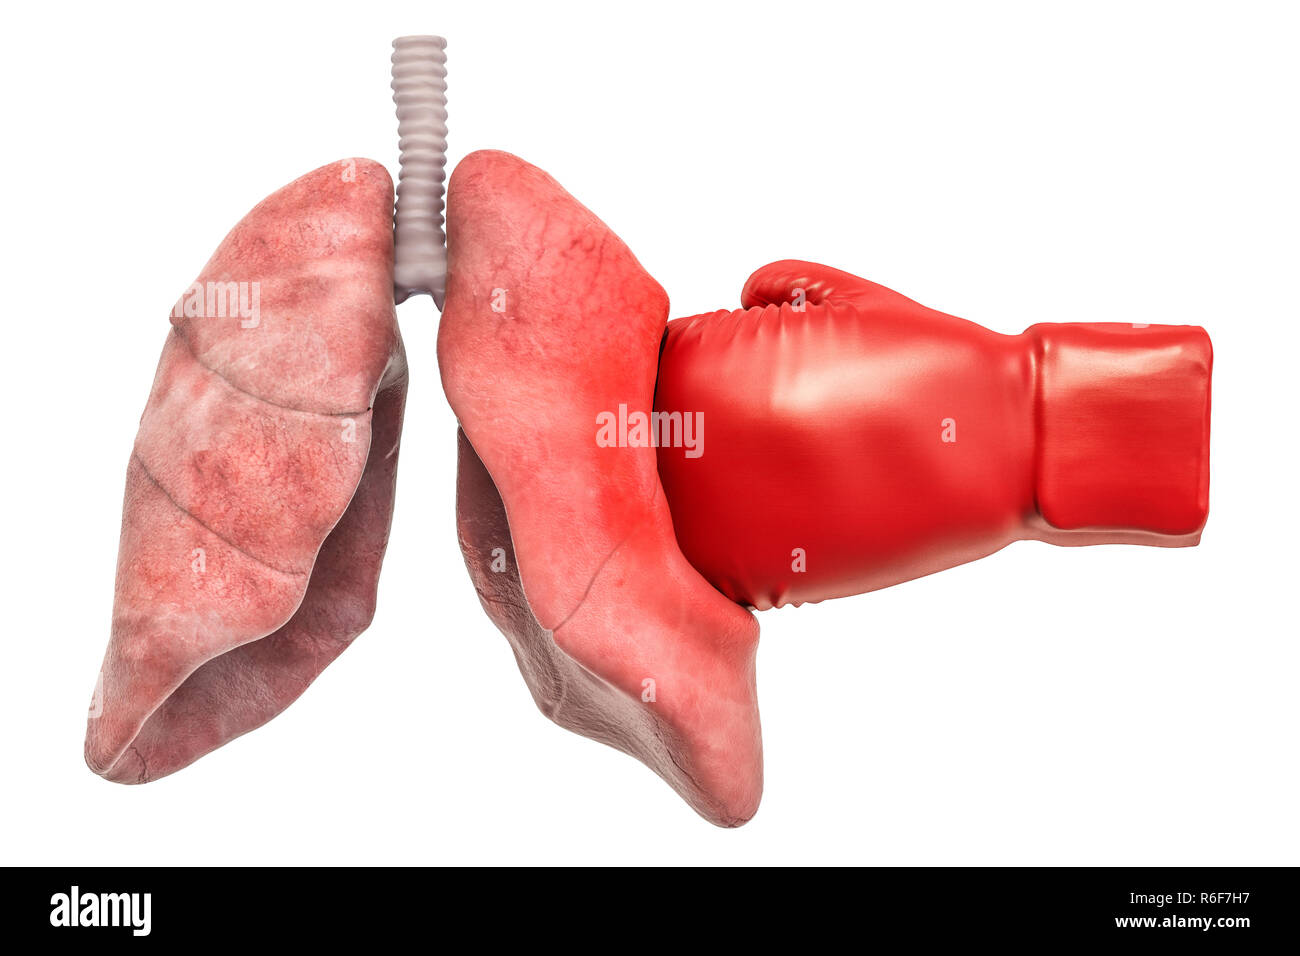 Pain in lungs, lungs disease concept. Human lungs with boxing glove. 3D rendering isolated on white background - Stock Image